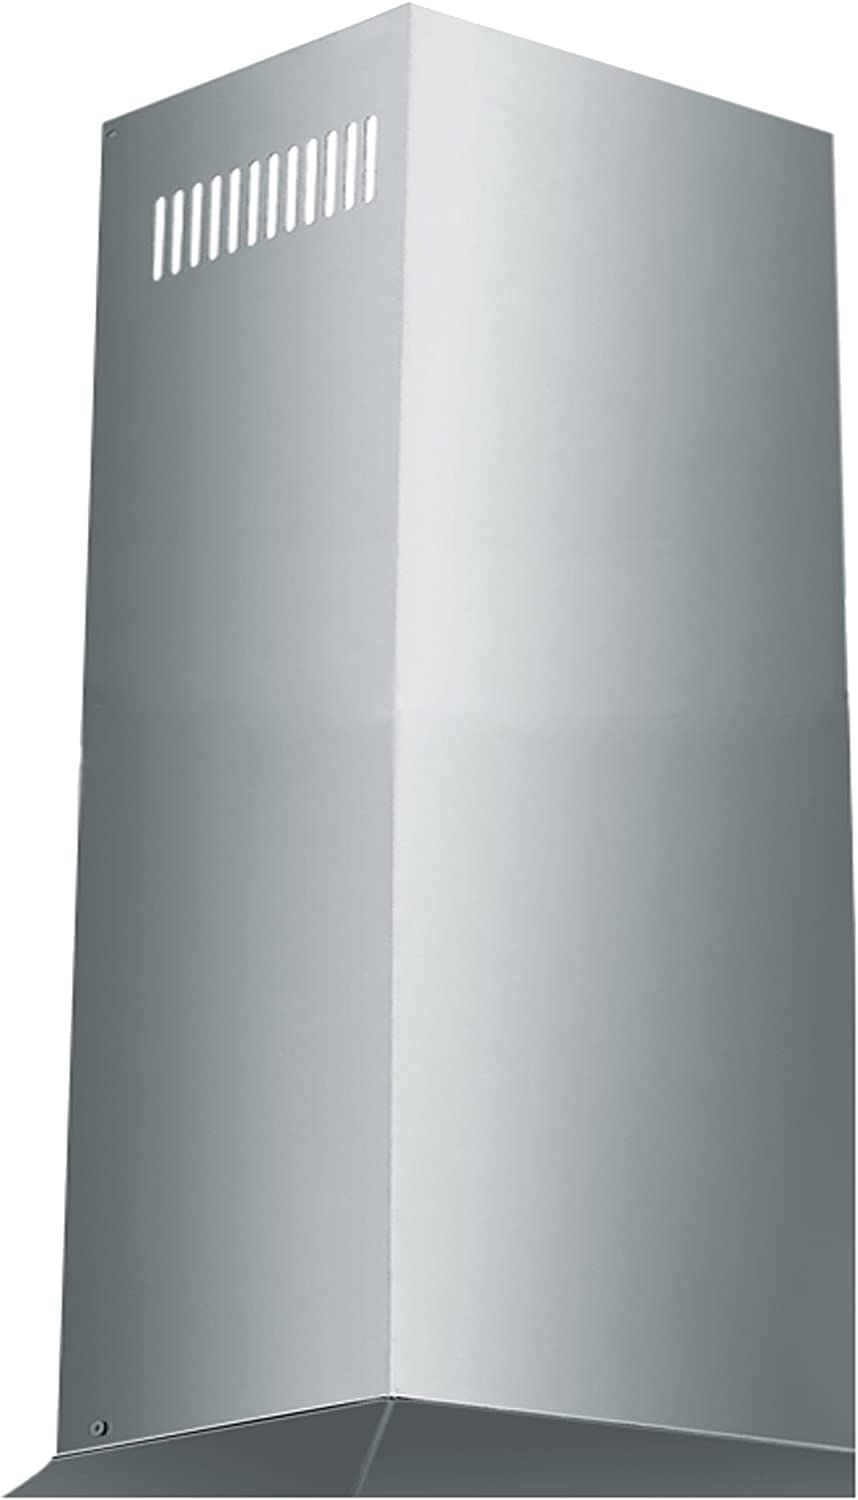 ZLINE 1-36 in. Chimney Extension for 9 ft. to 10 ft. Ceilings